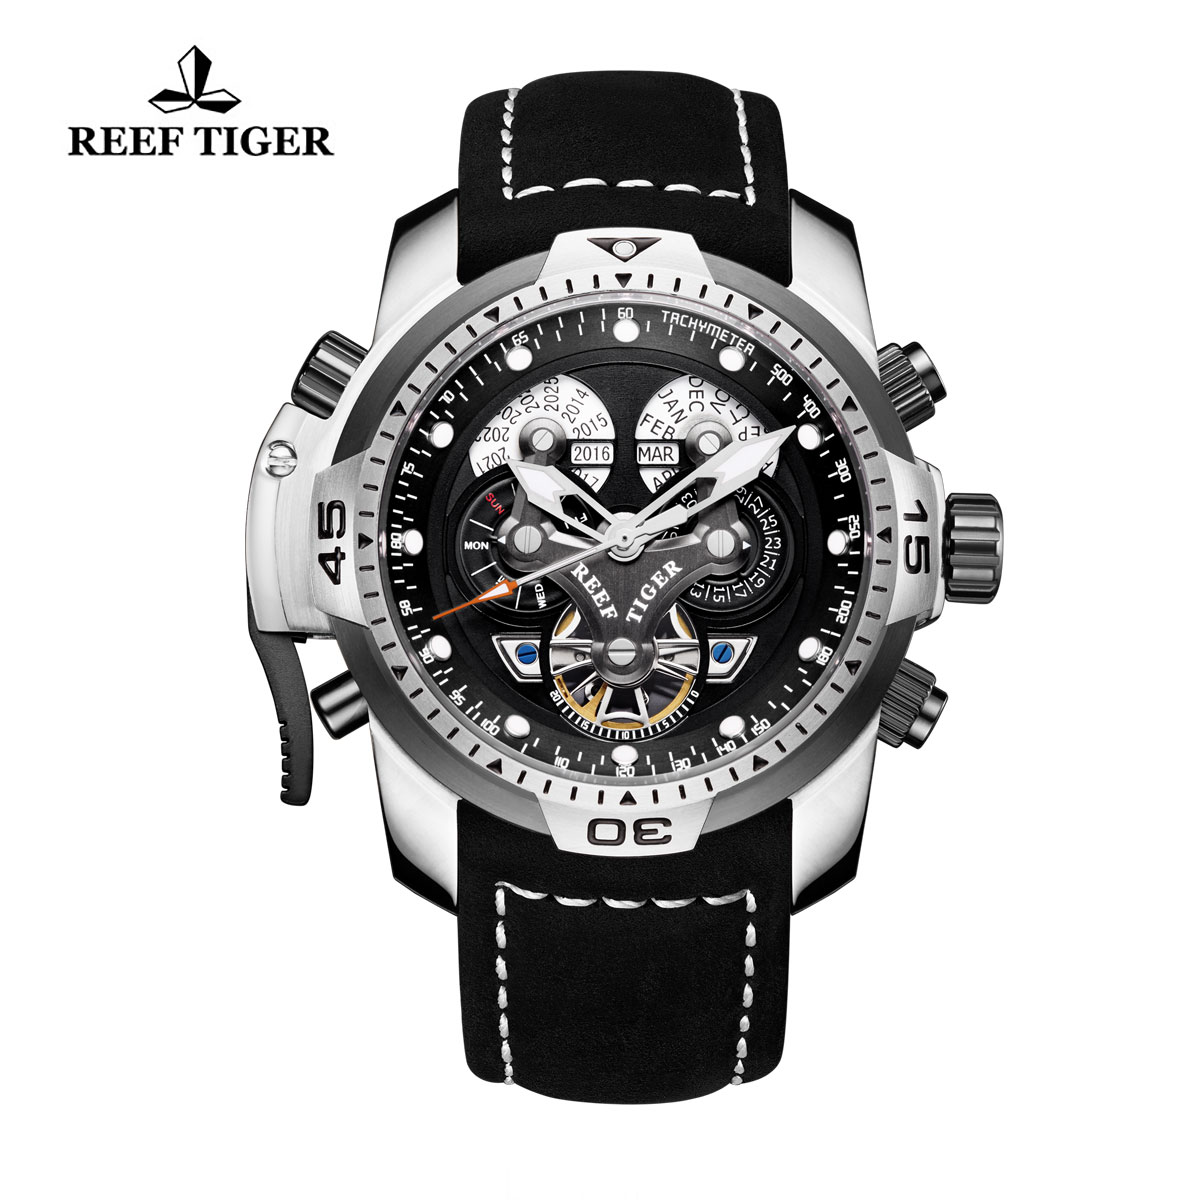 Reef Tiger Concept Sport Watches Automatic Watch Steel Case Black Leather RGA3503-YBBLB